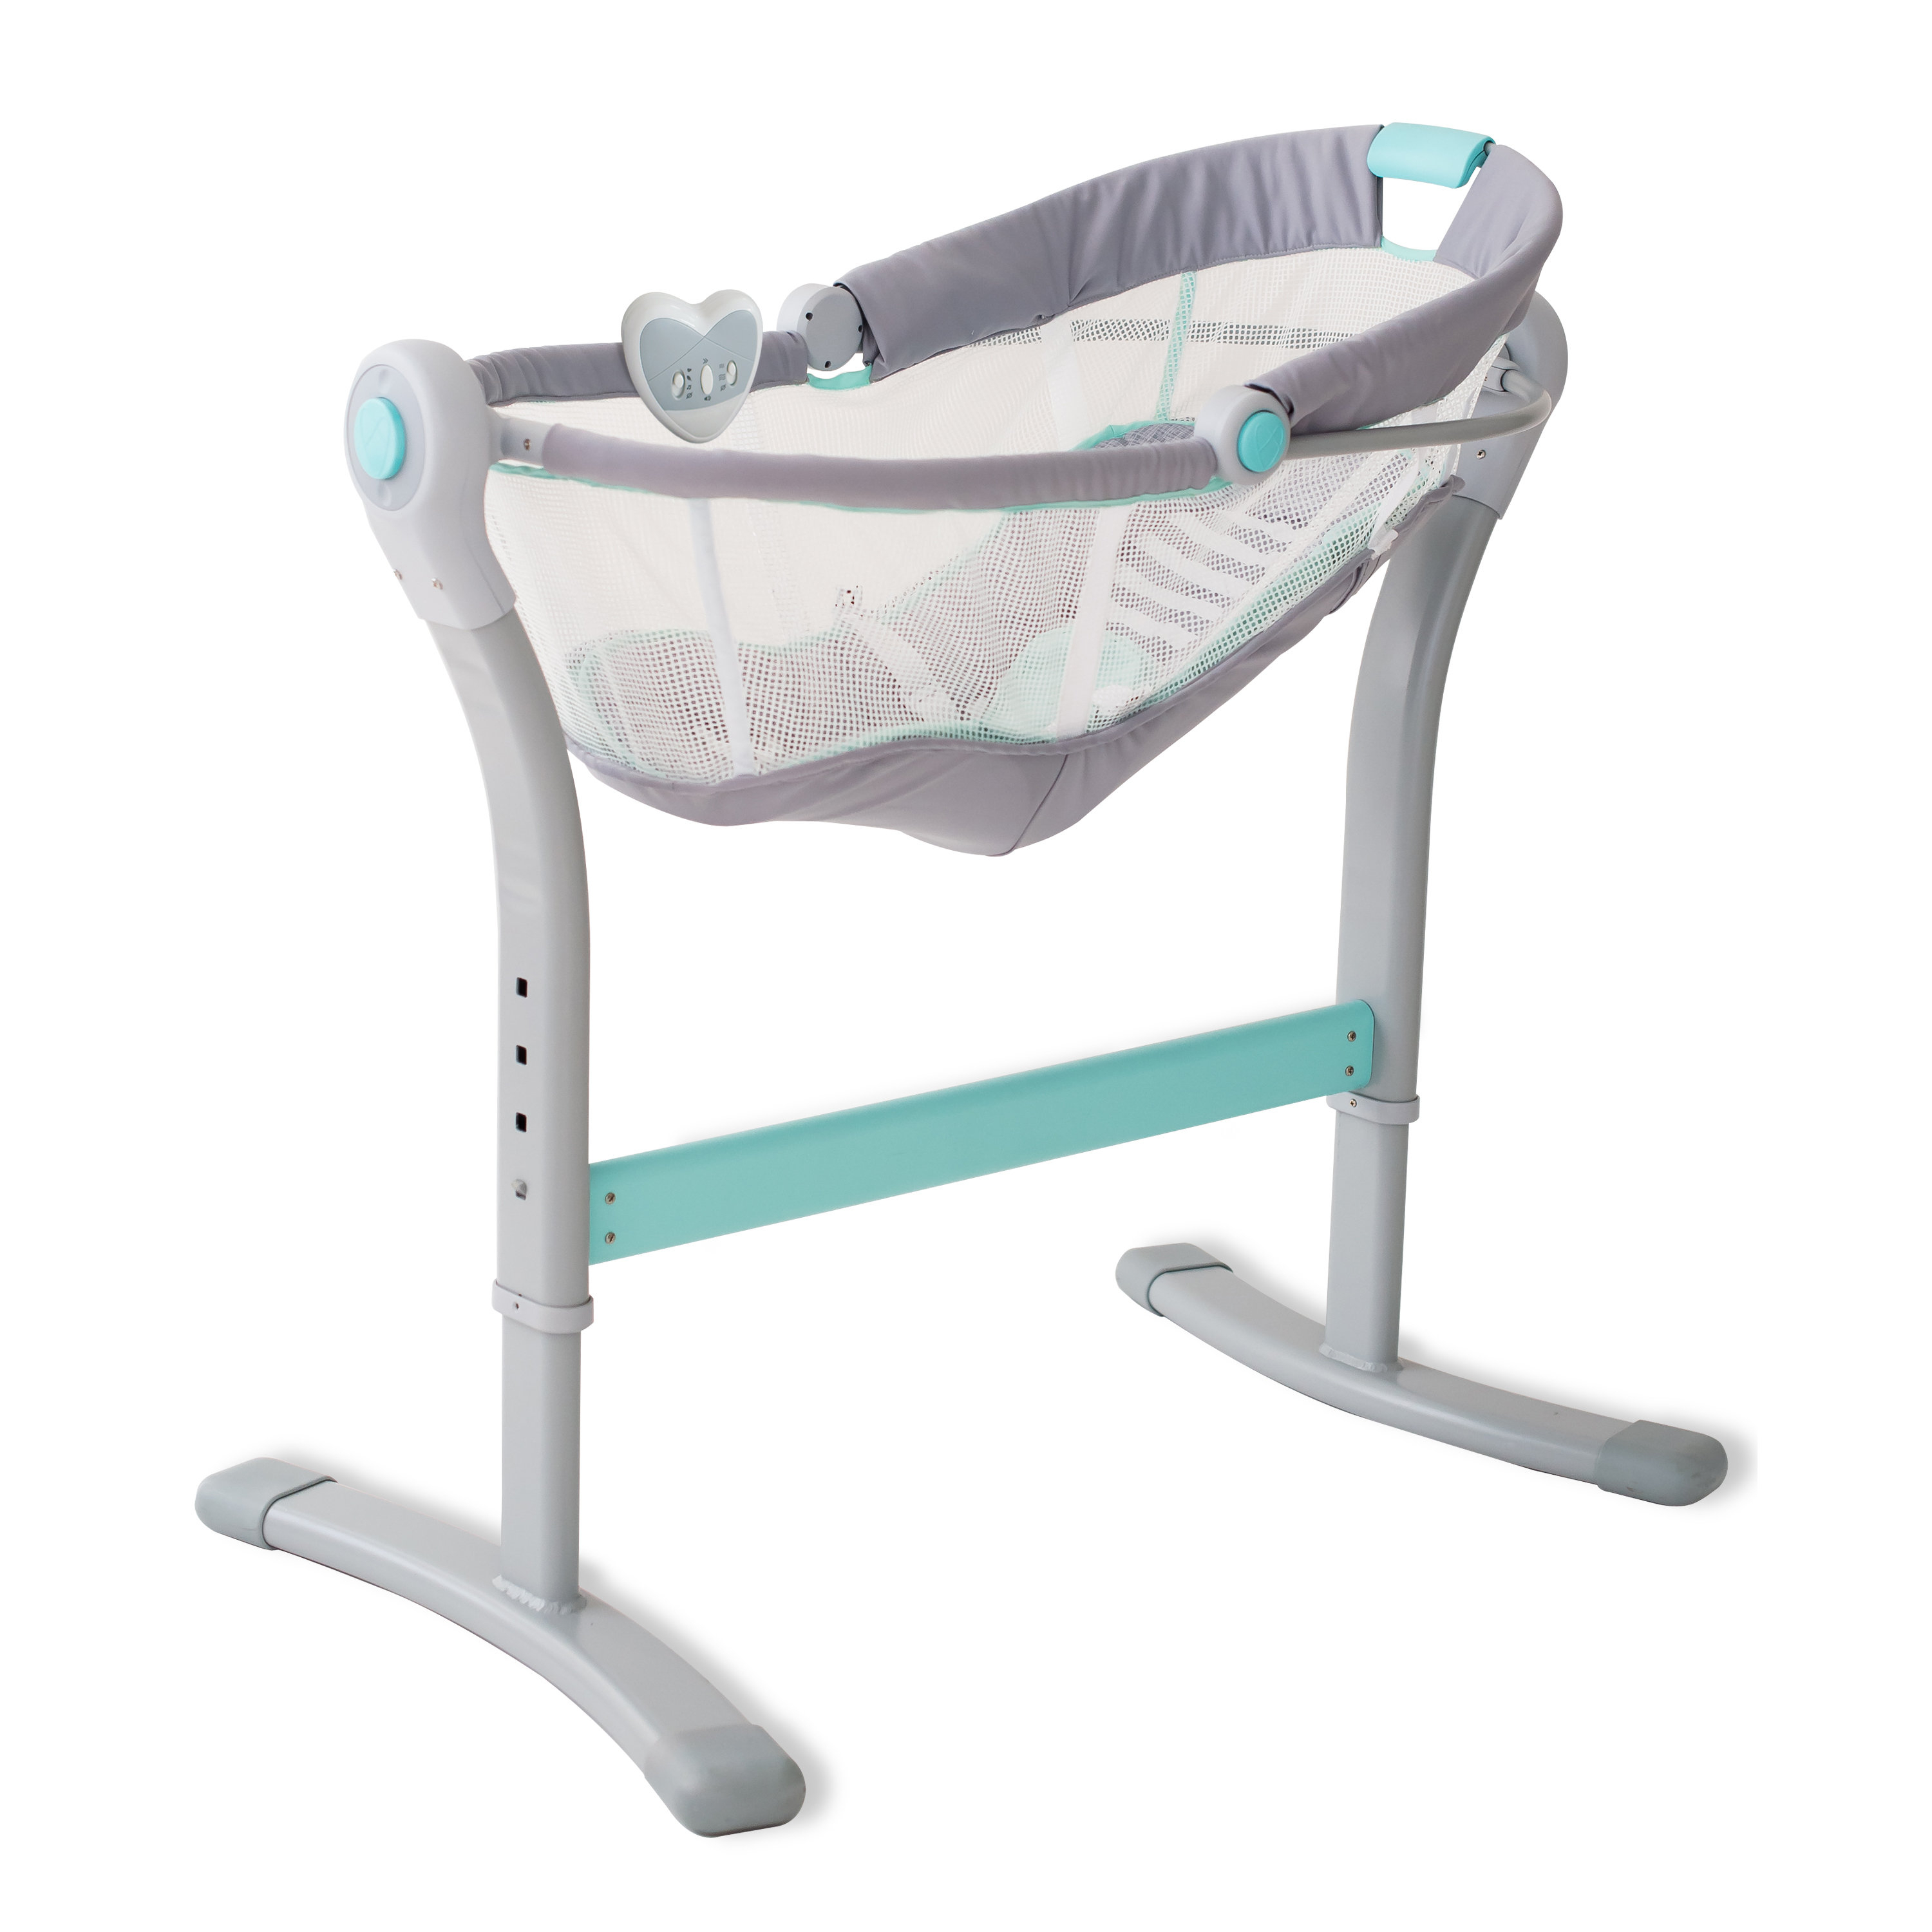 Summer Infant Swaddleme®Your Bed Sleeper & Reviews | Wayfair Regarding Bailey Mist Track Arm Skirted Swivel Gliders (View 24 of 25)